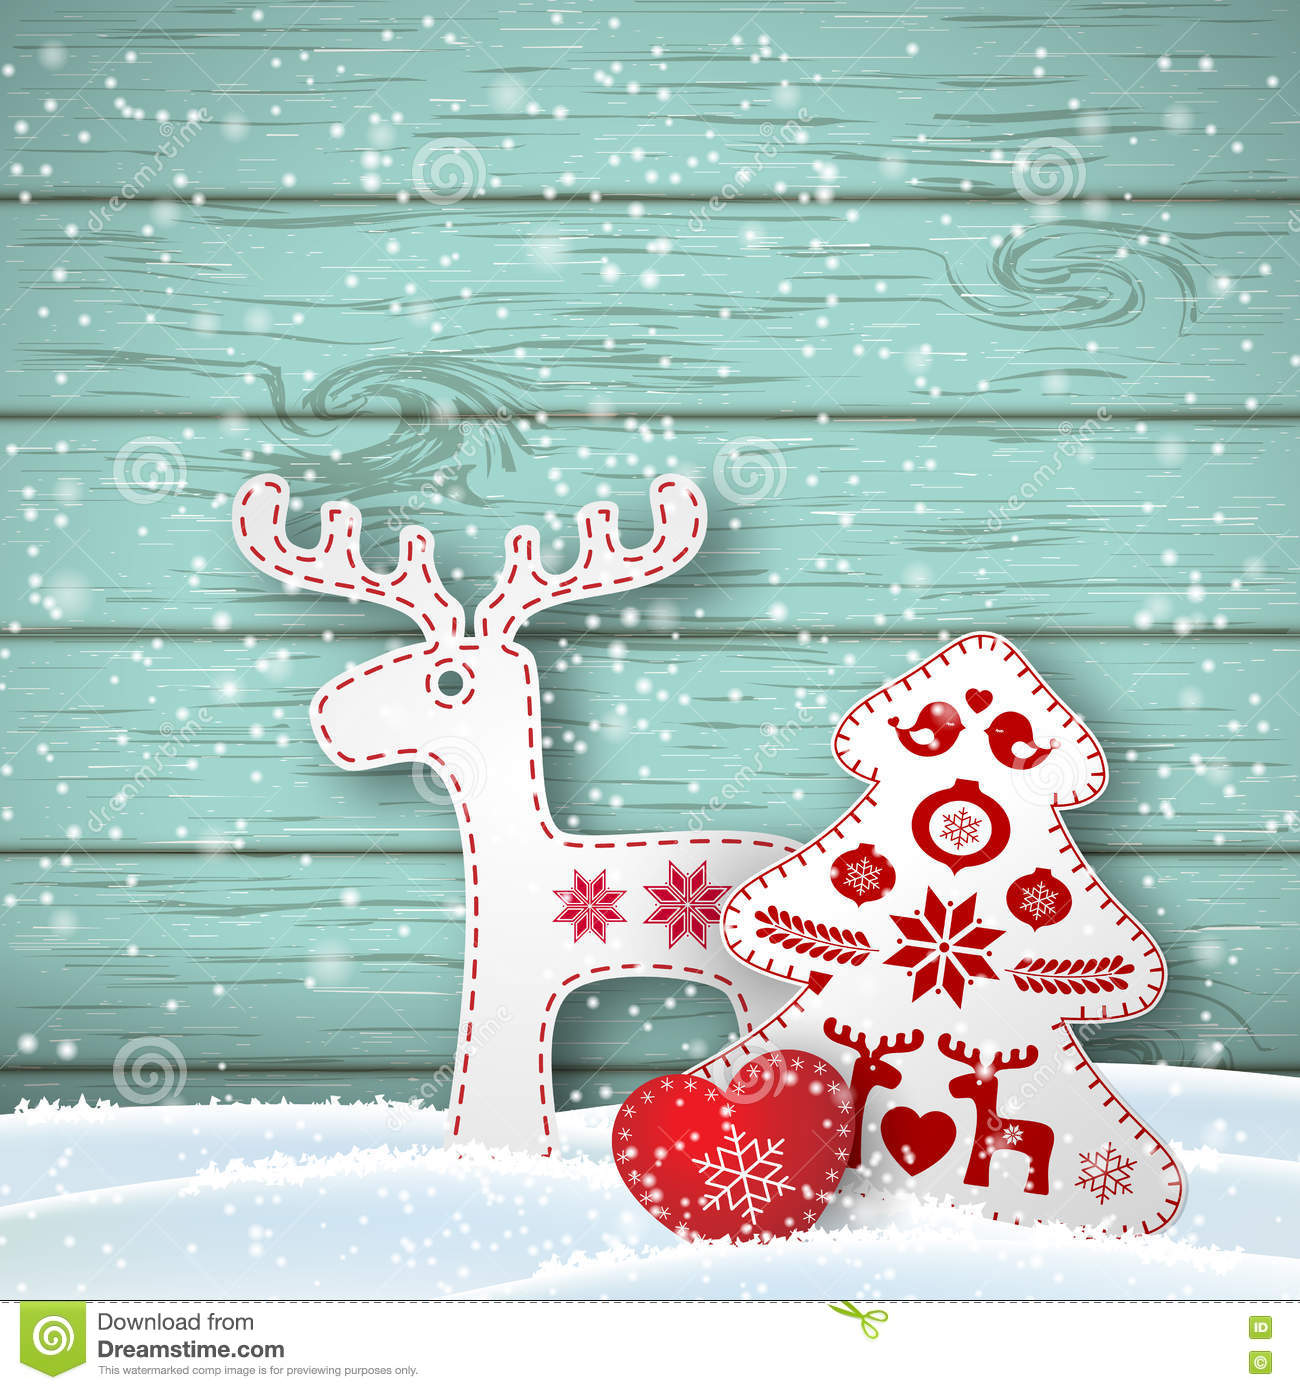 Christmas background, small scandinavian styled decorations in front od blue wooden wall, illustration